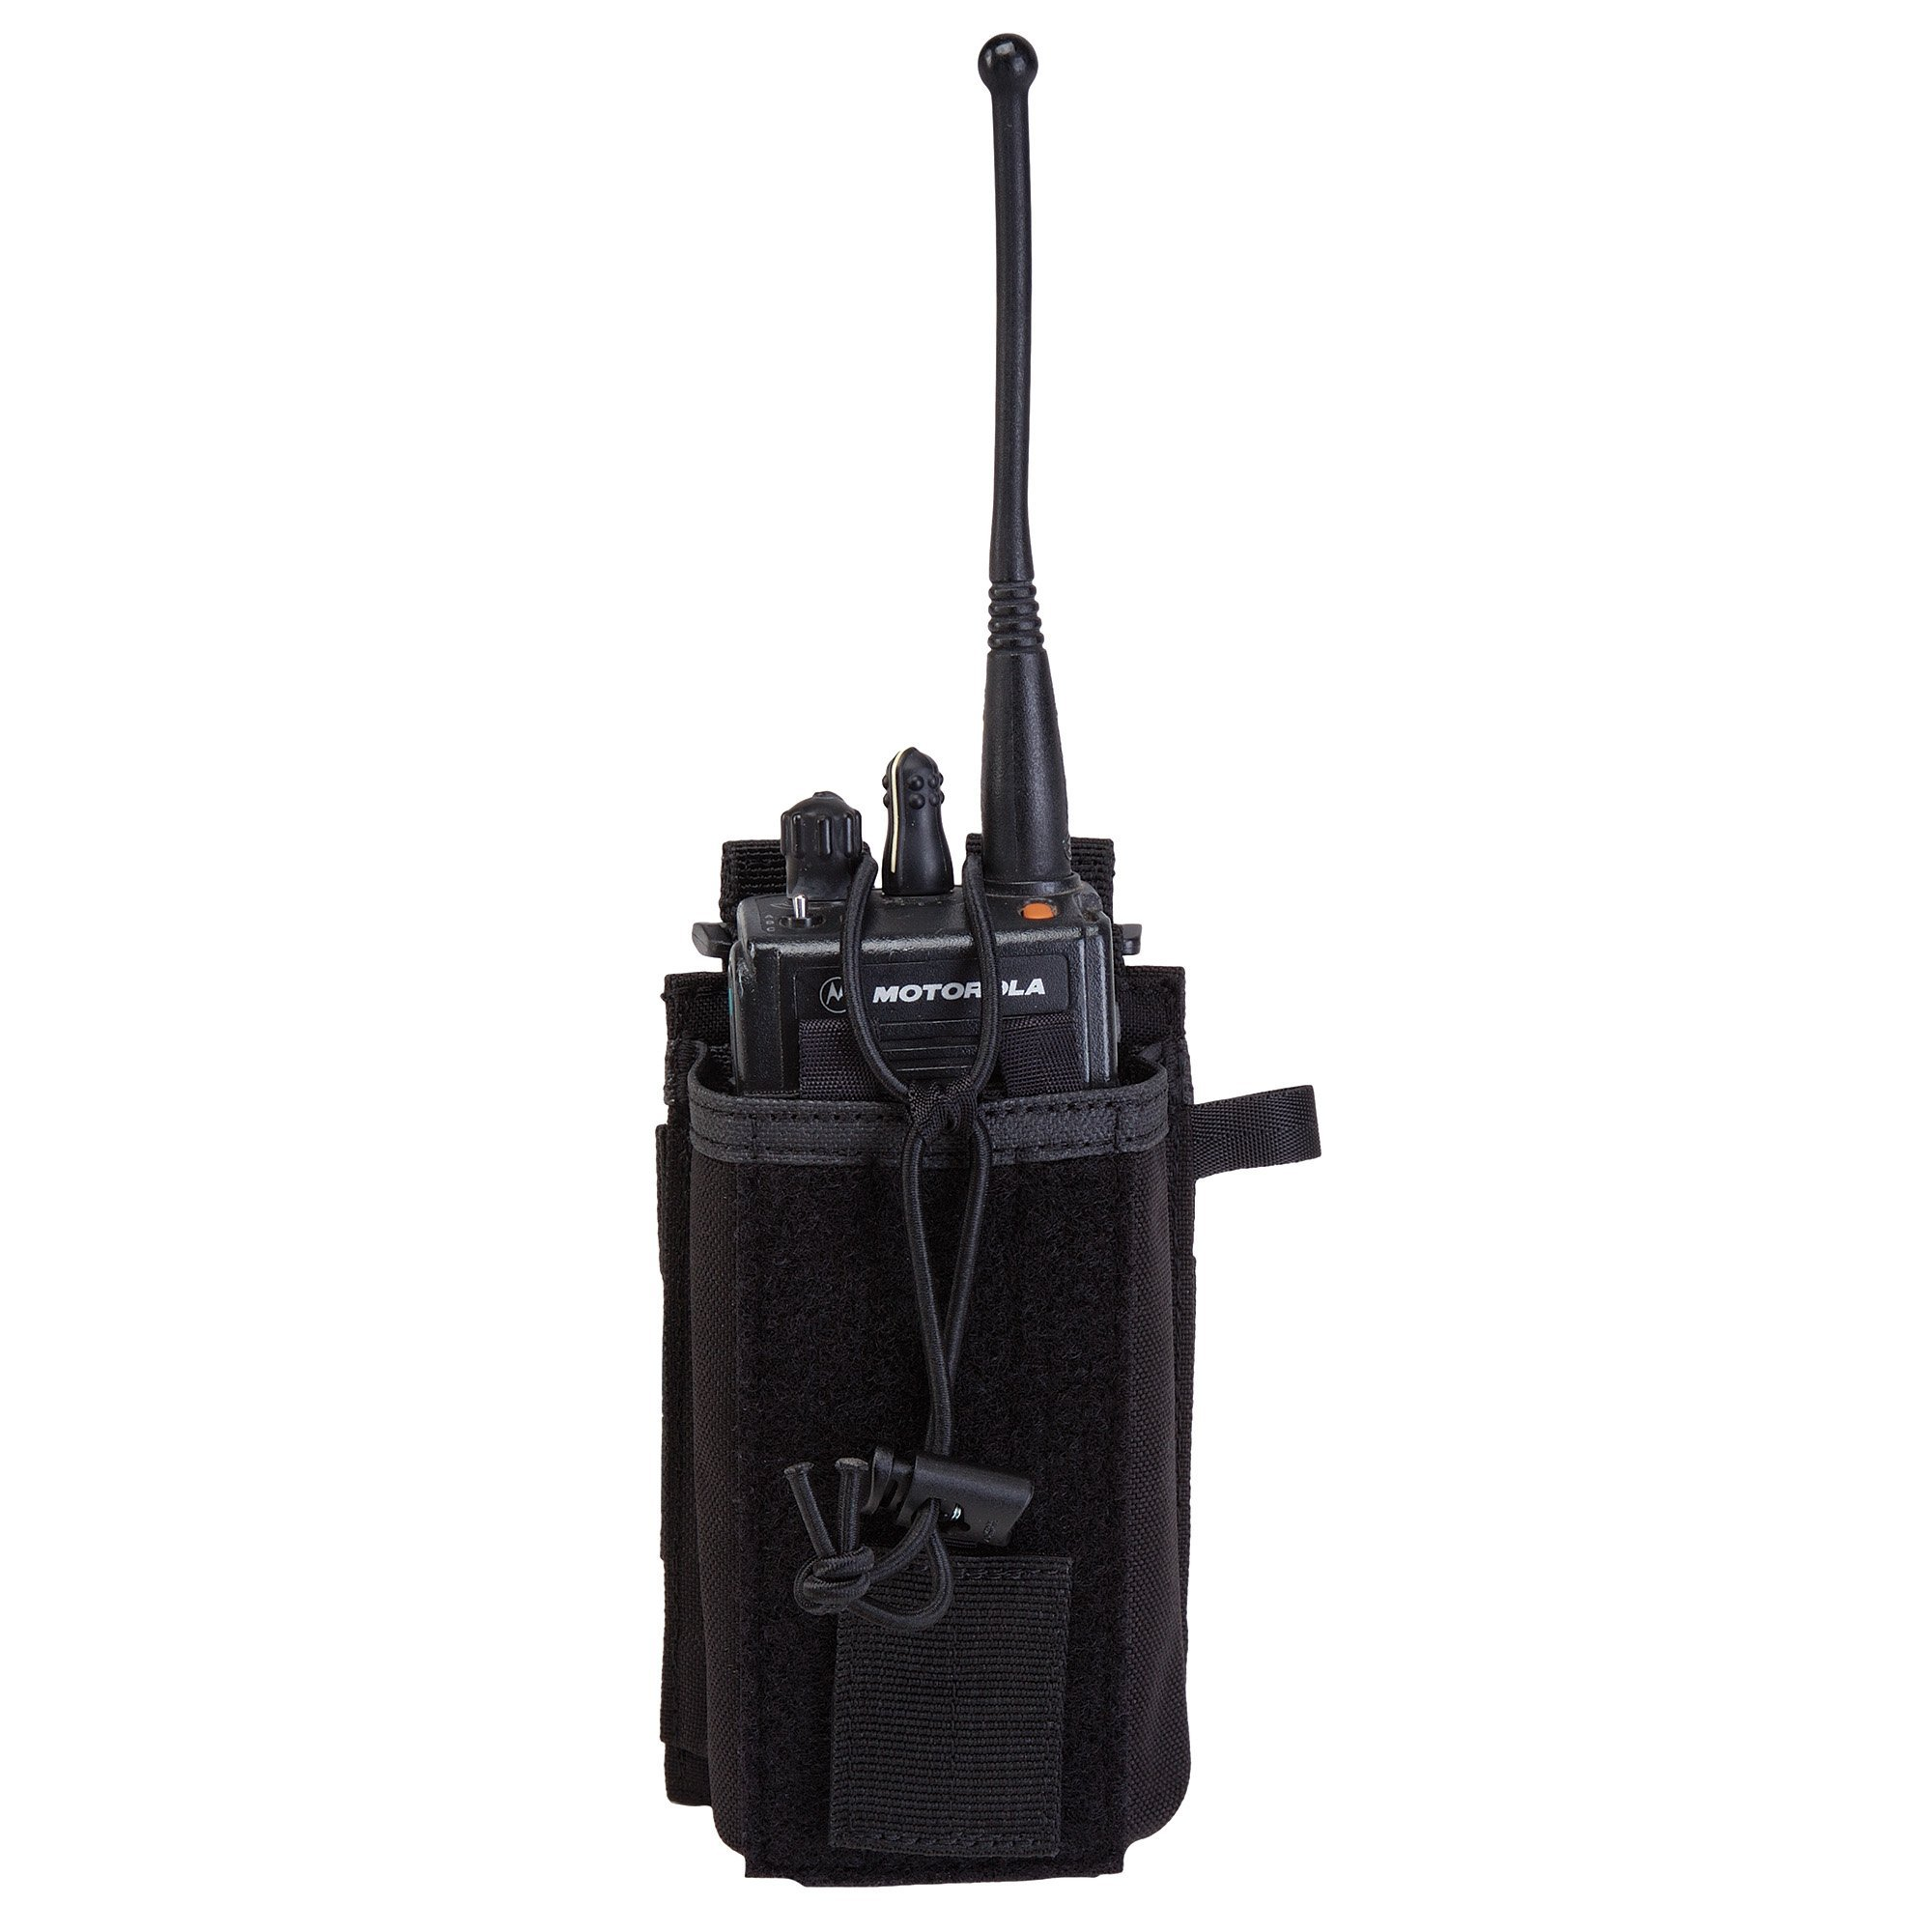 5.11 Radio Pouch Compatible with 5.11 Bags/Packs/Duffels, Style 58718, Black by 5.11